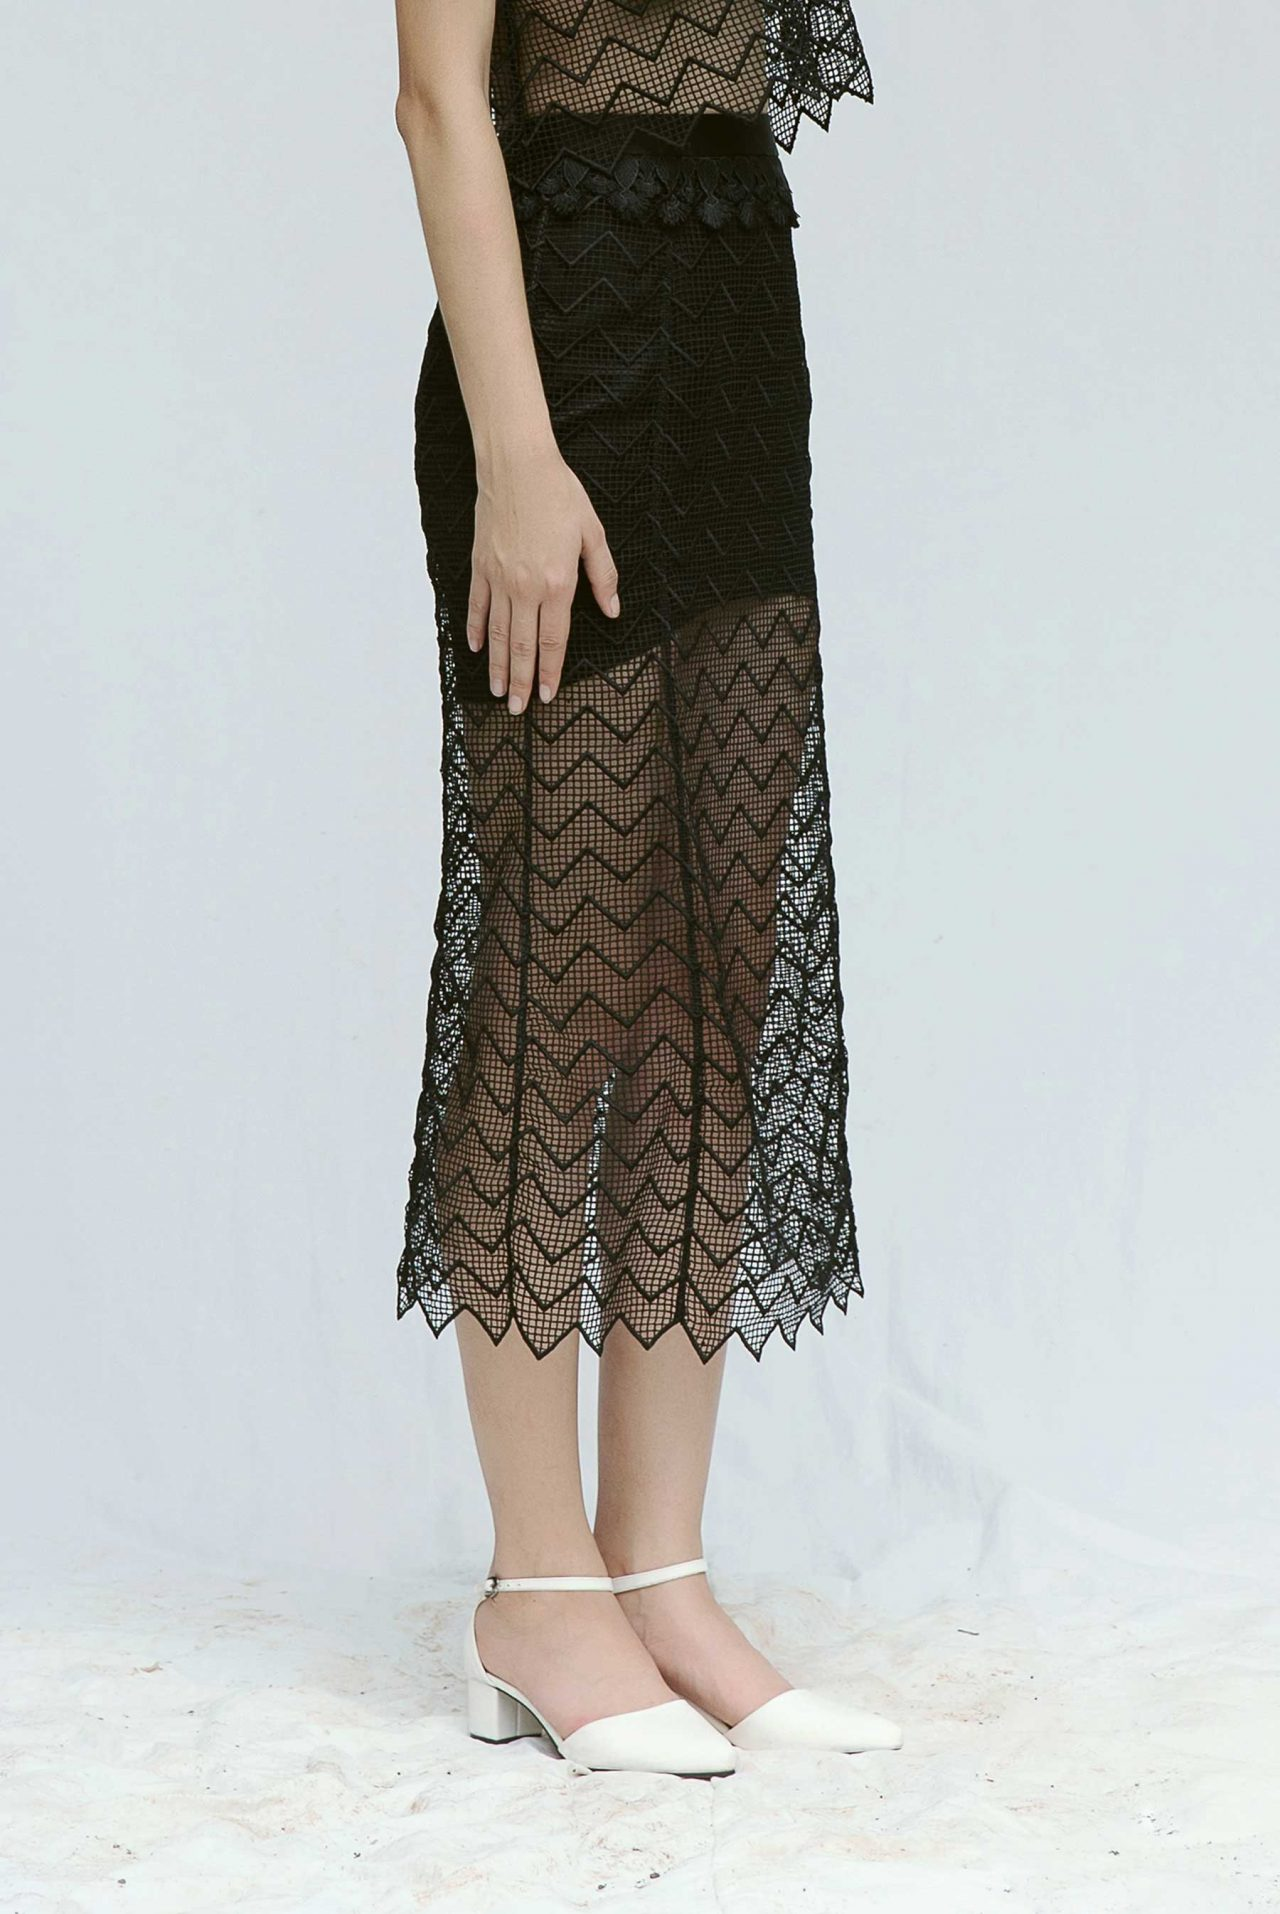 7317-mermaid-lace-skirt-black2